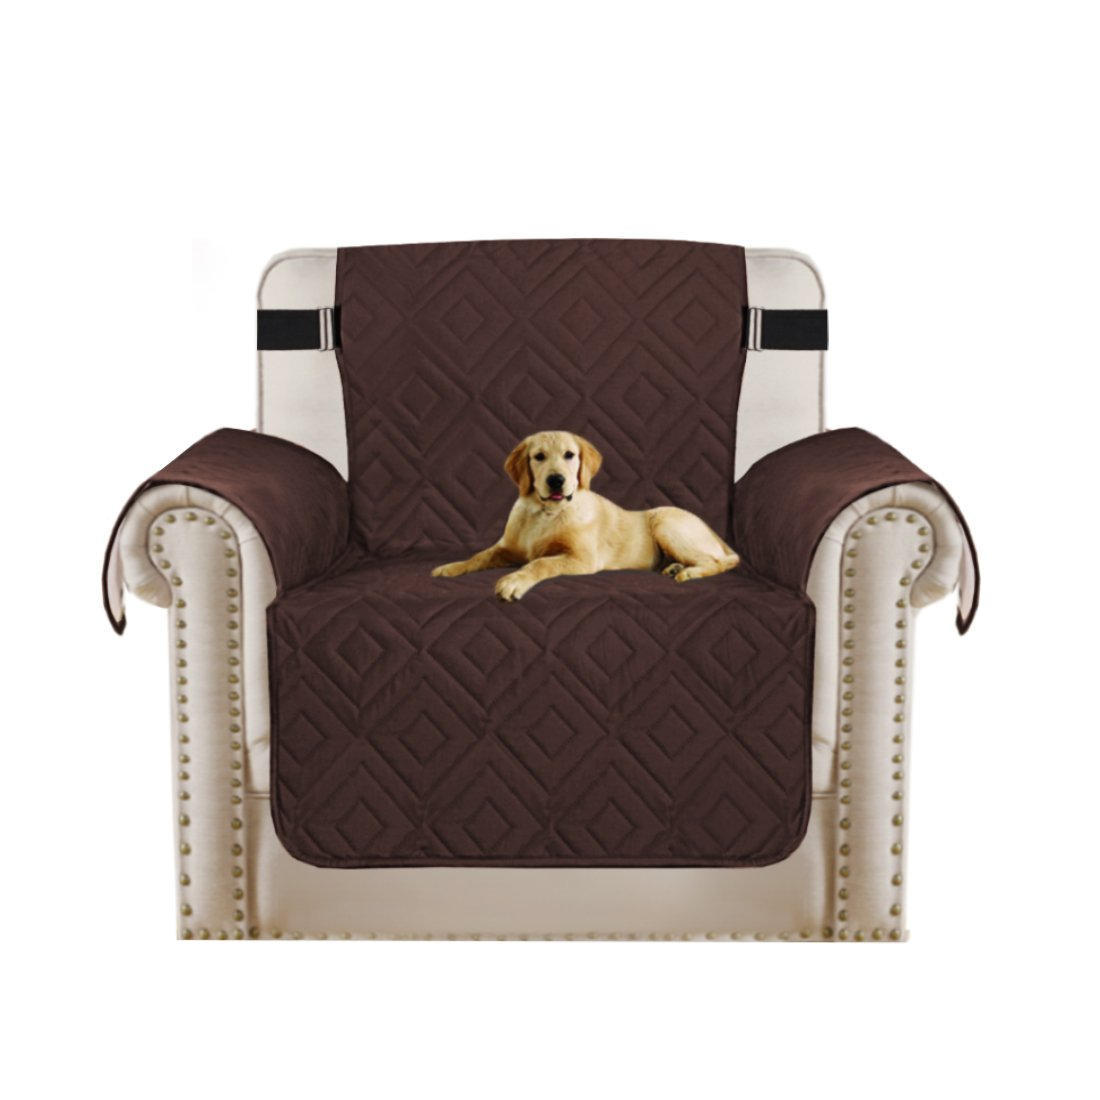 Turquoize Reversible Furniture Protector Water Repellant Elastic Strap to Keep Cover in Place Machine Washable Sofa Slipcover Perfect for Pets and Kids (Brown/Beige, Chair 75''x65'')